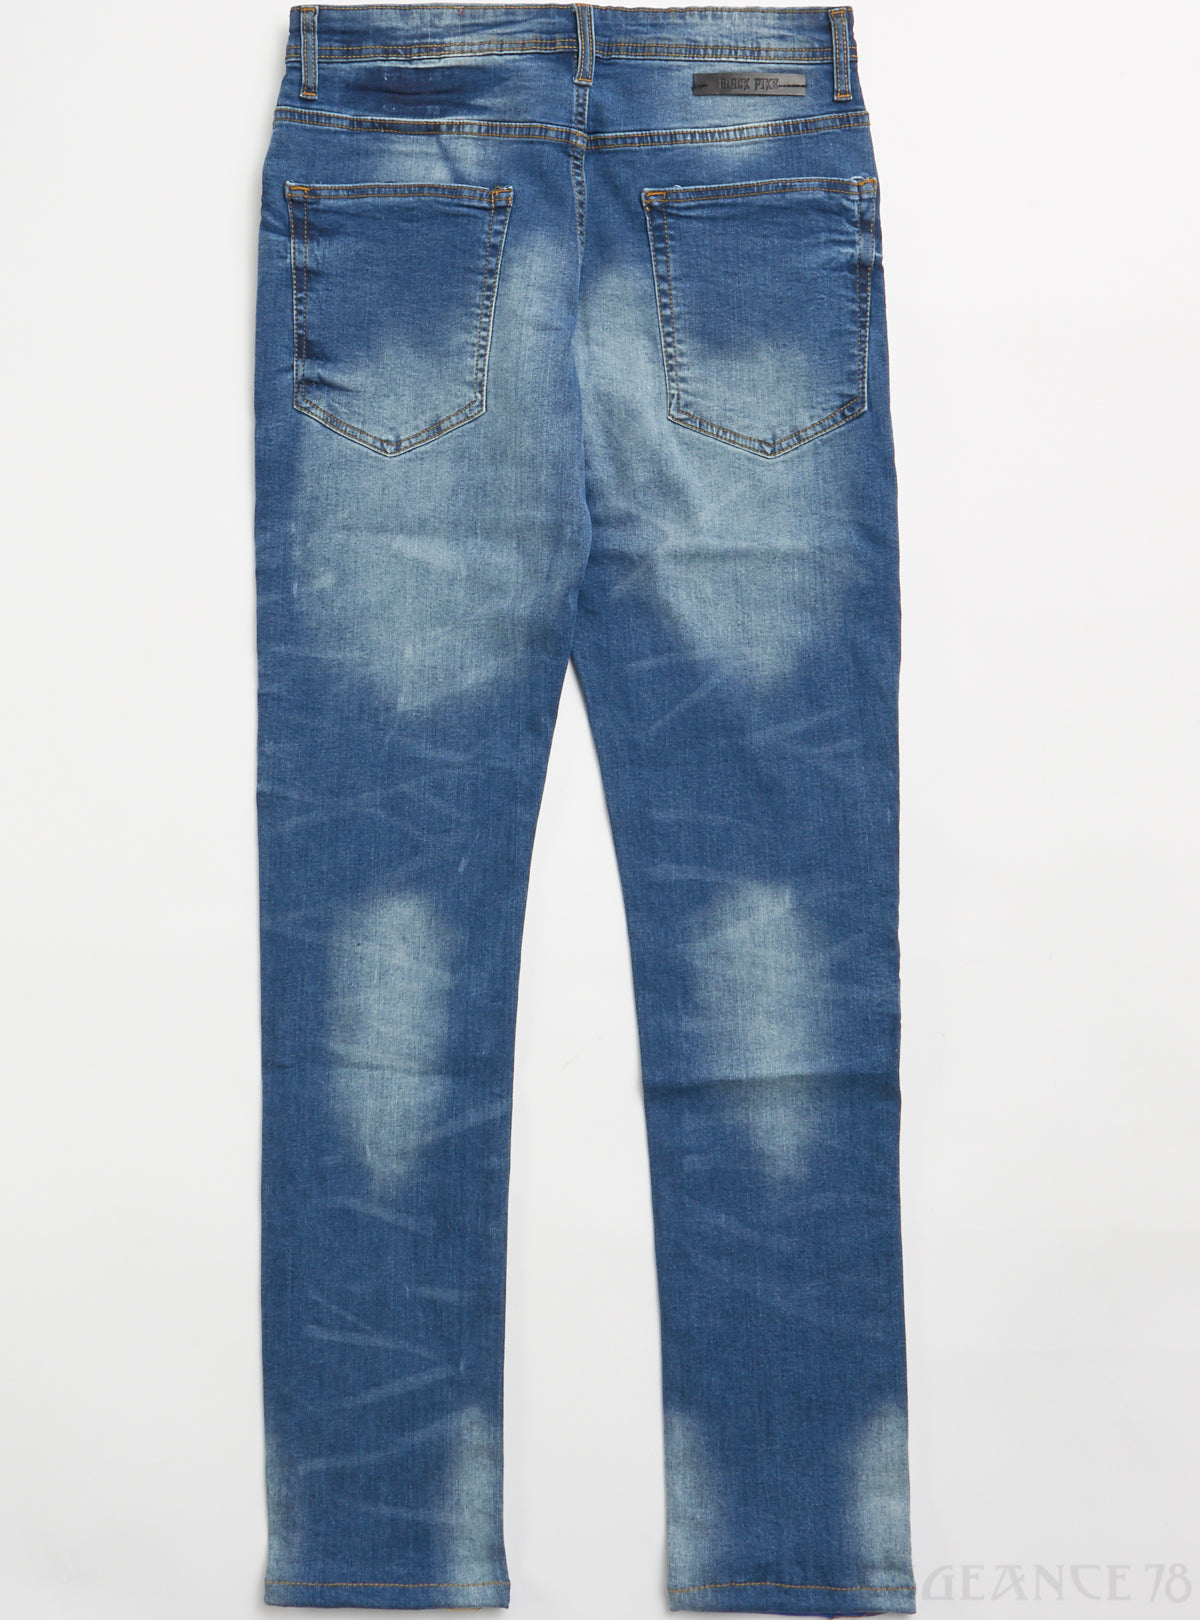 Black Pike Jeans - Fashion Denim with Fire Print - Vintage - BS0706